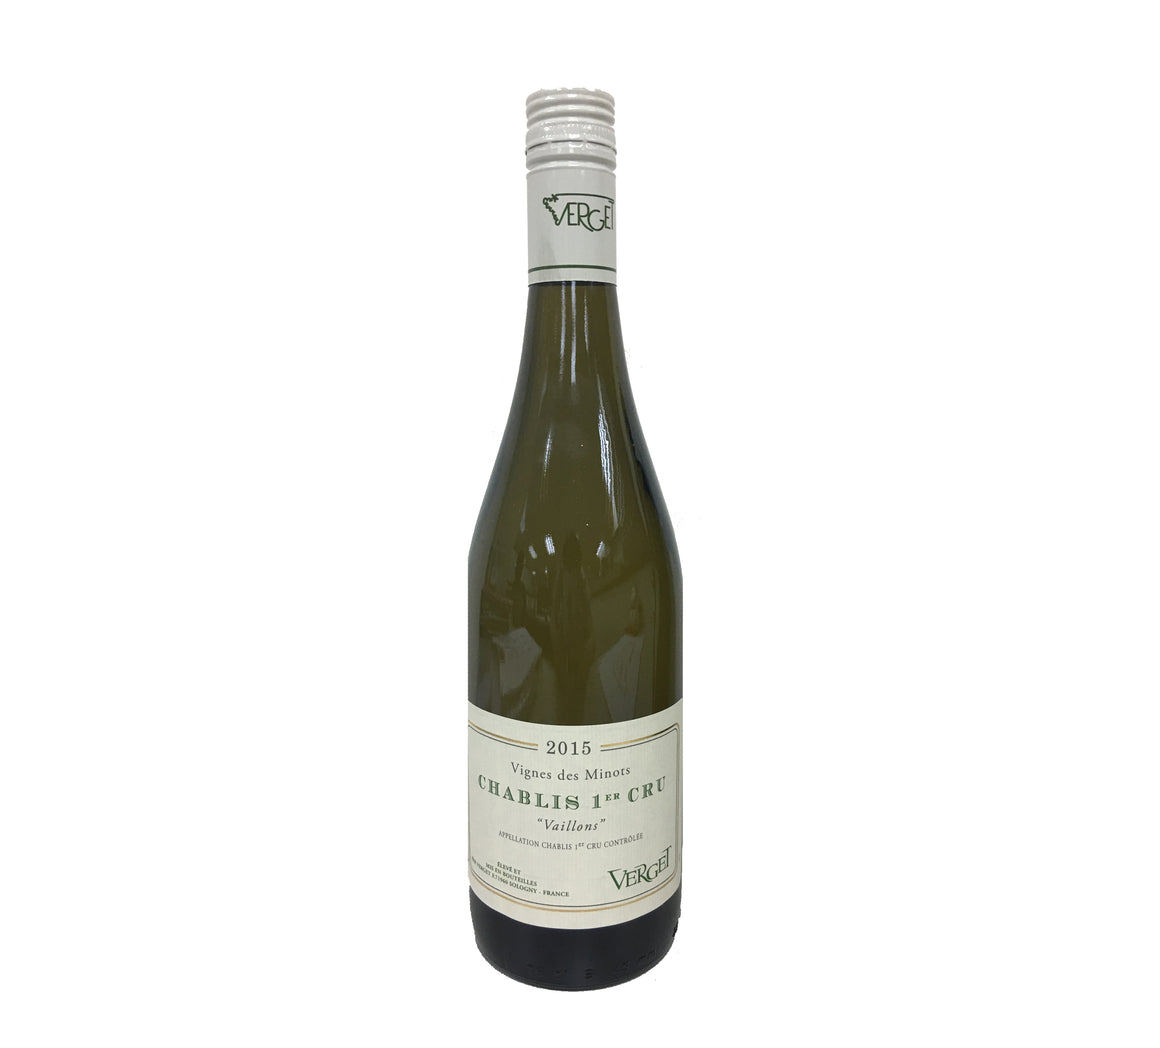 Chablis Vaillons VV Minots, Verget, 2015 - Secret Cellar